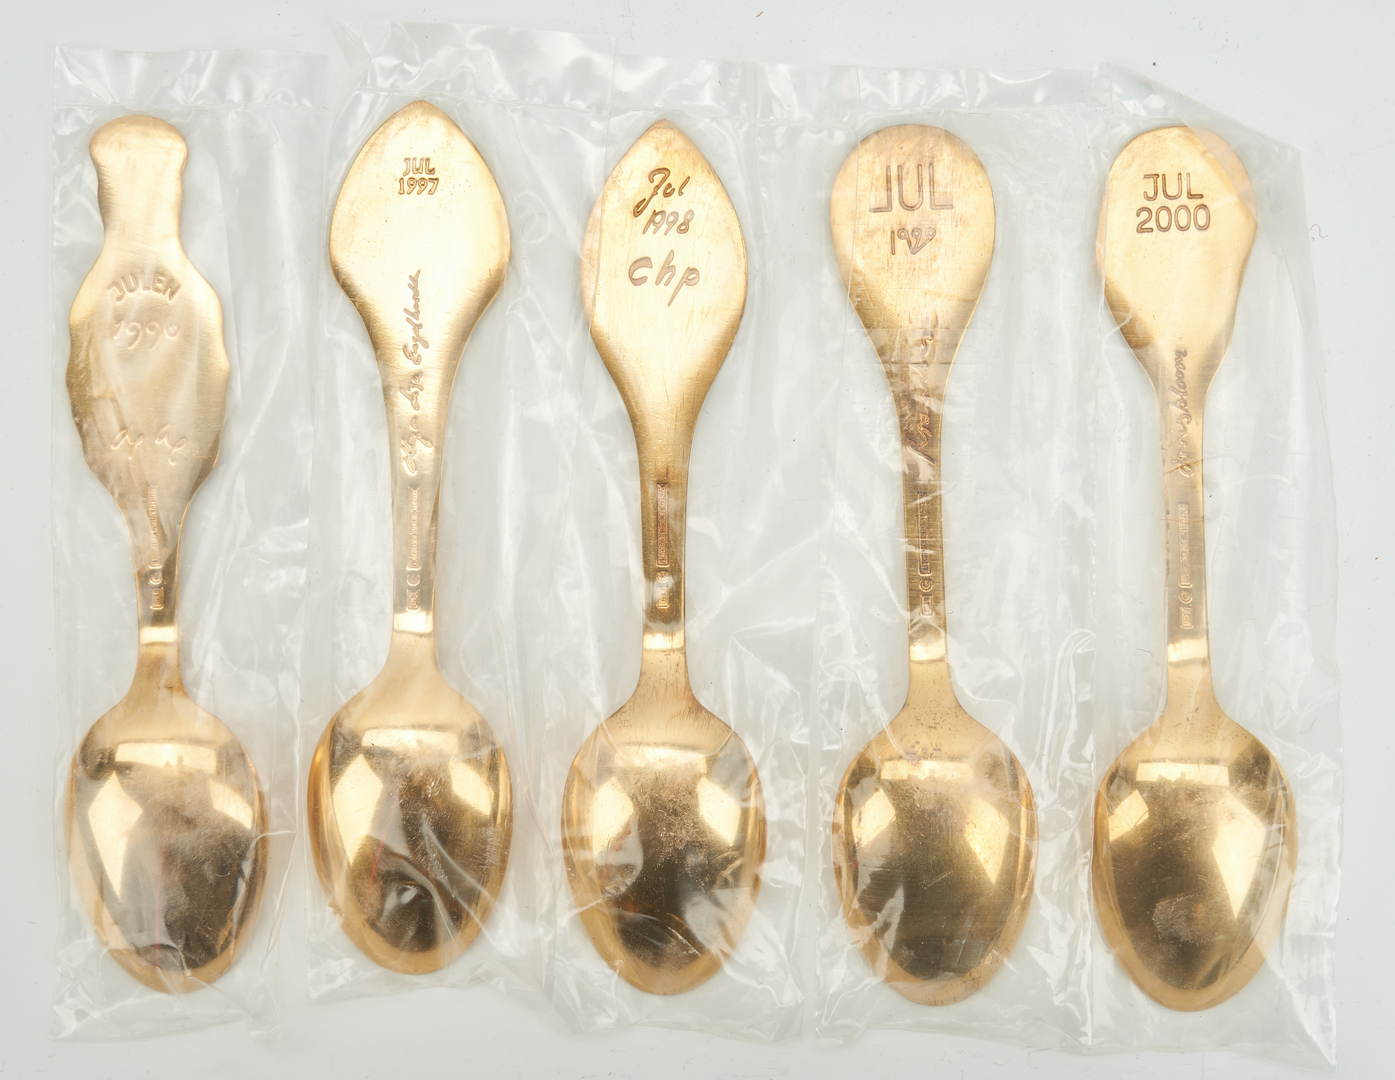 Lot 442: 25 A. Michelsen Gilded Sterling Silver Christmas Spoons, 1970-2000